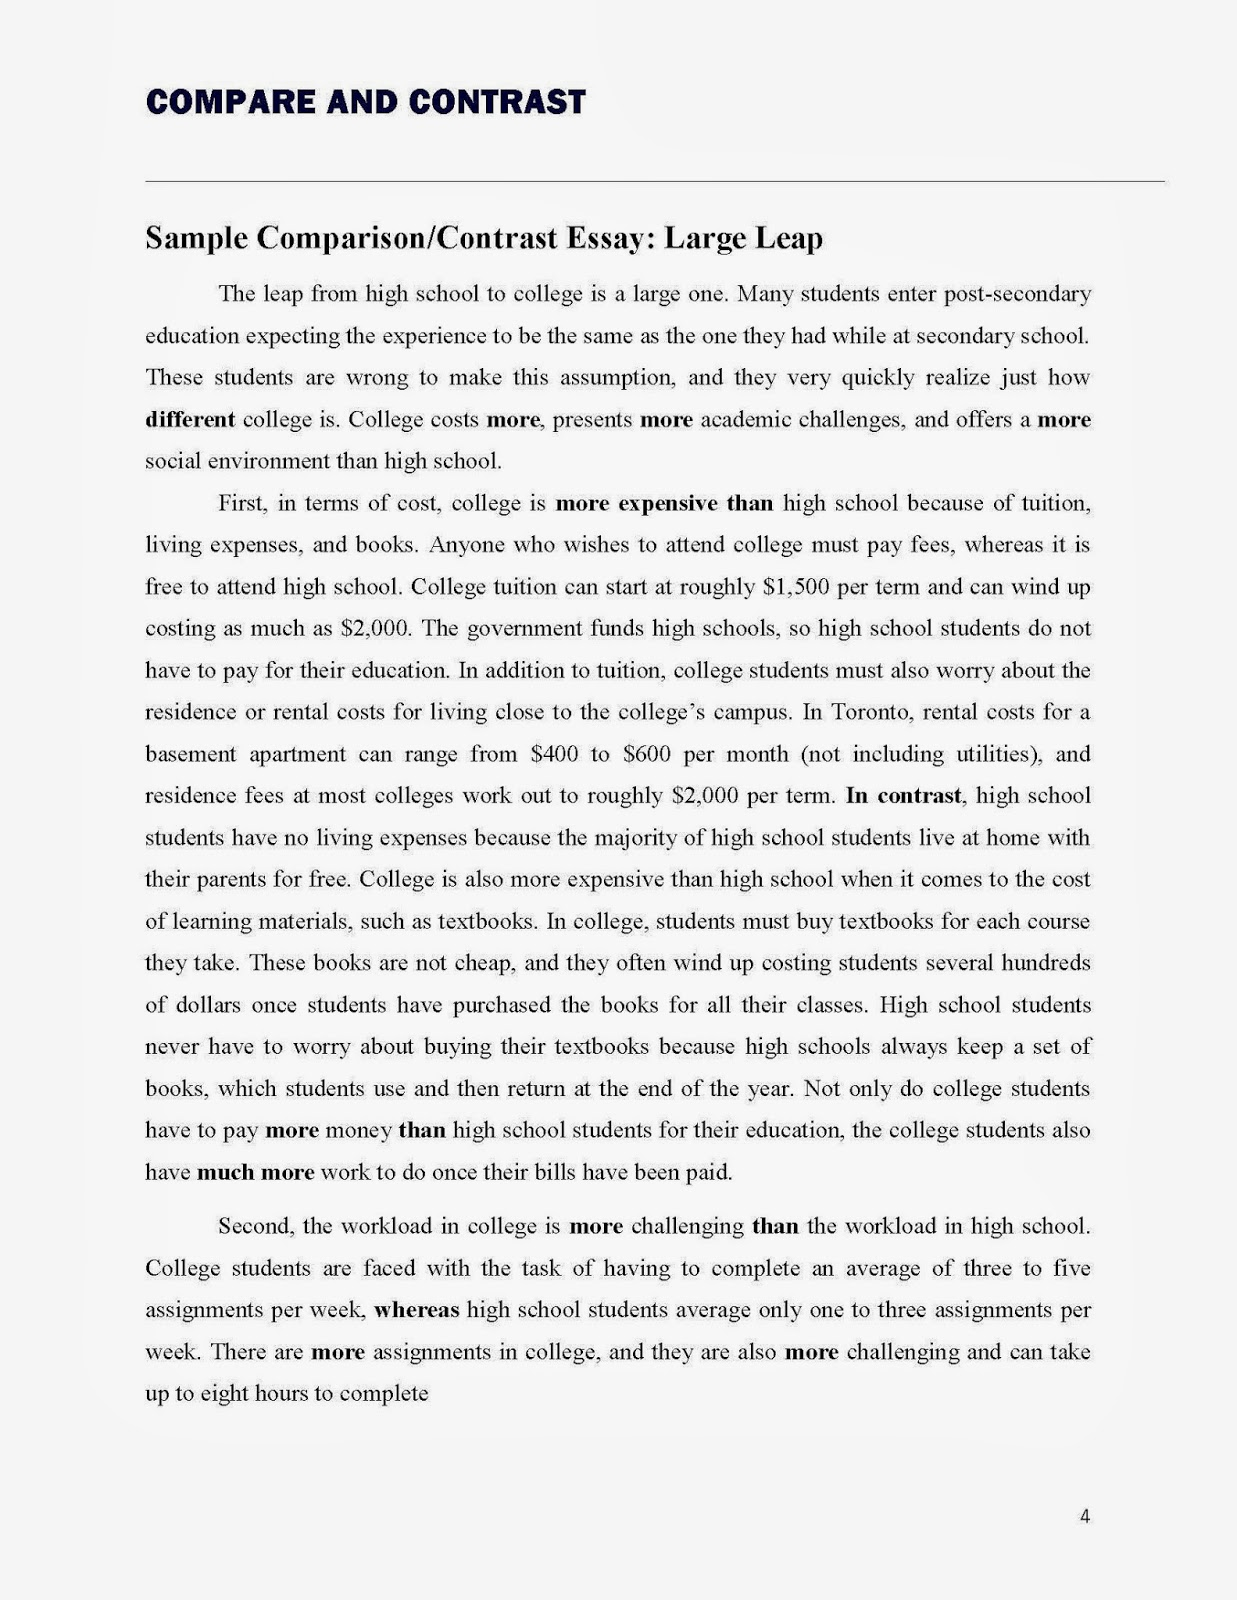 Compare And Contrast Argumentative Essay Compare Contrast Essay Prompts Compare Contrast Essay Writing Compare And Contrast  Essay Prompt Liao Ipnodns Rucompare Monster Walter Dean Myers Essay also Narrative Essay On Friendship Comparison And Contrast Essay Examples College Essay On Poetry  Florida Essay